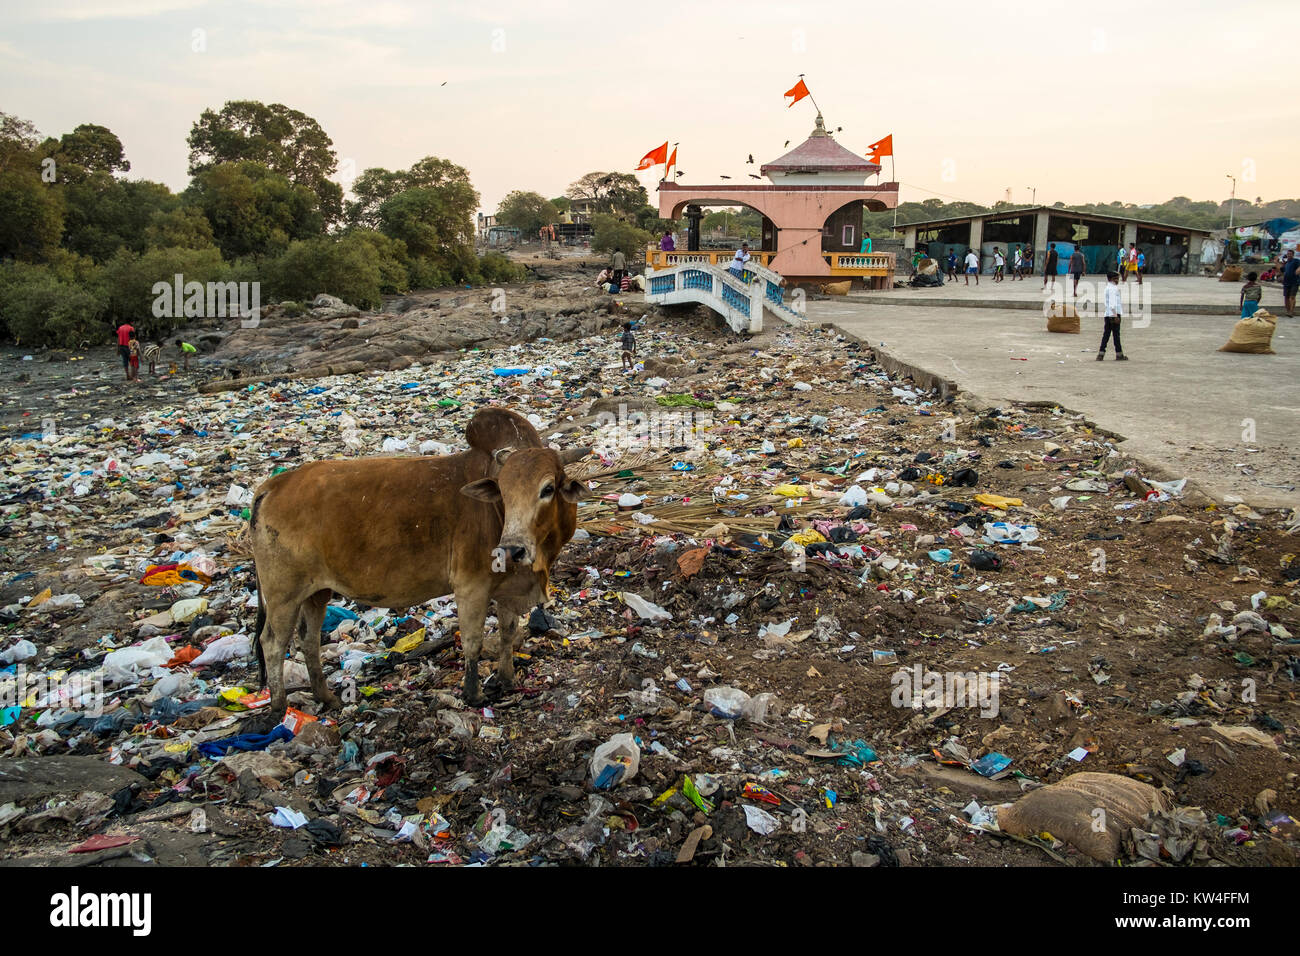 Cows feed and childfren play in garbage next to a temple in Madh Island, Madh, Mumbai, India Stock Photo